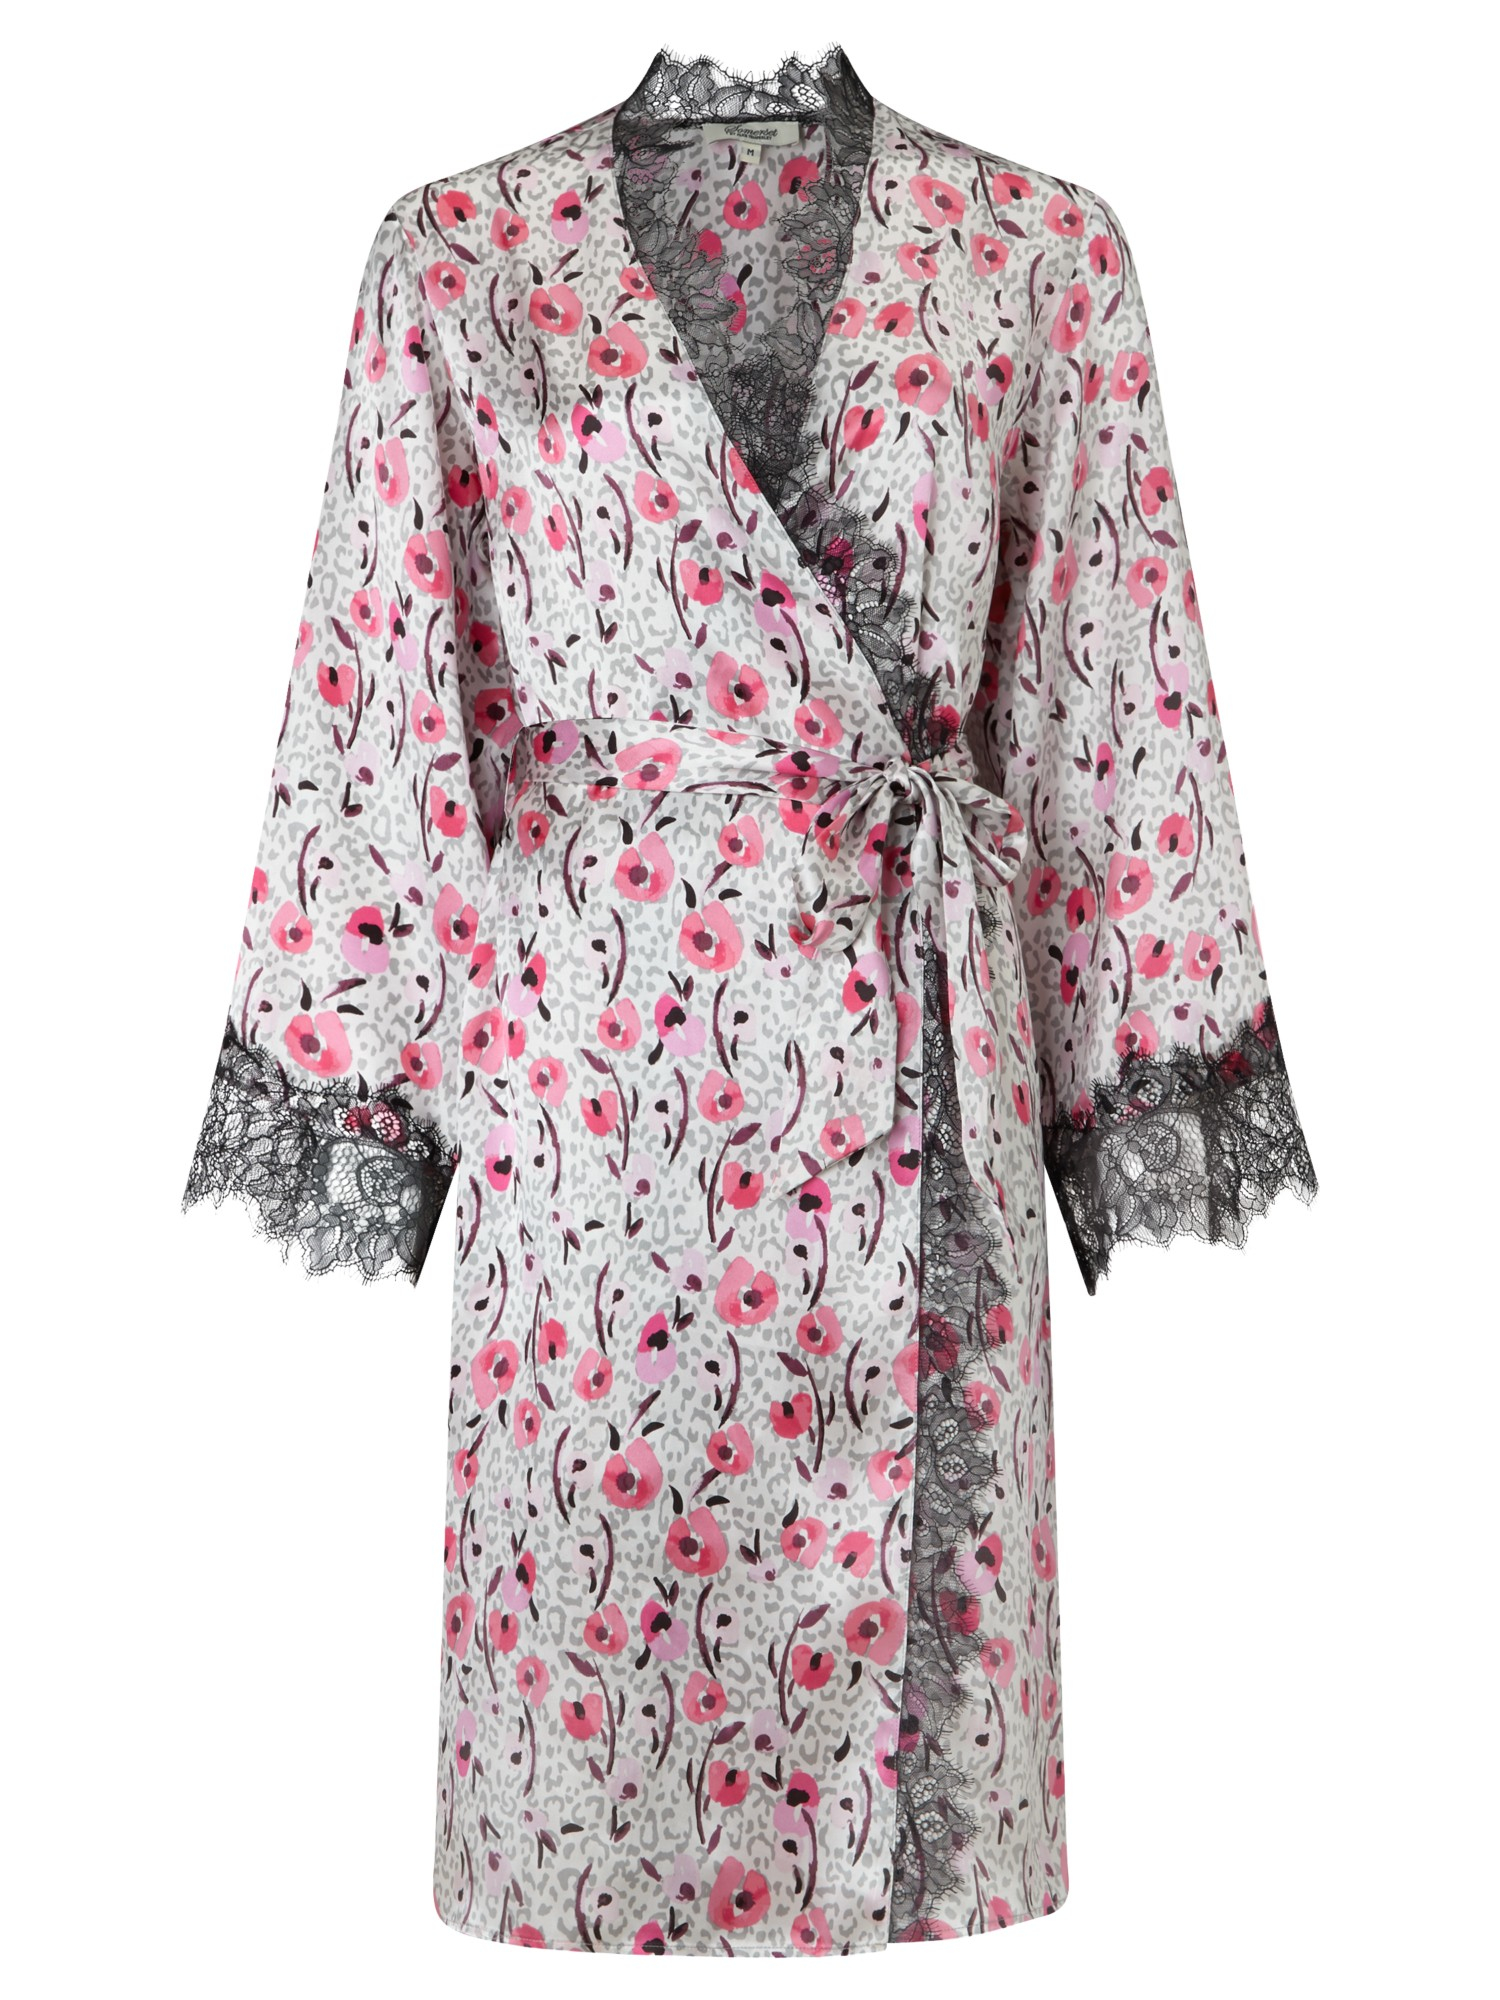 Somerset by Alice Temperley Silk Floral Animal Kimono Robe in Pink